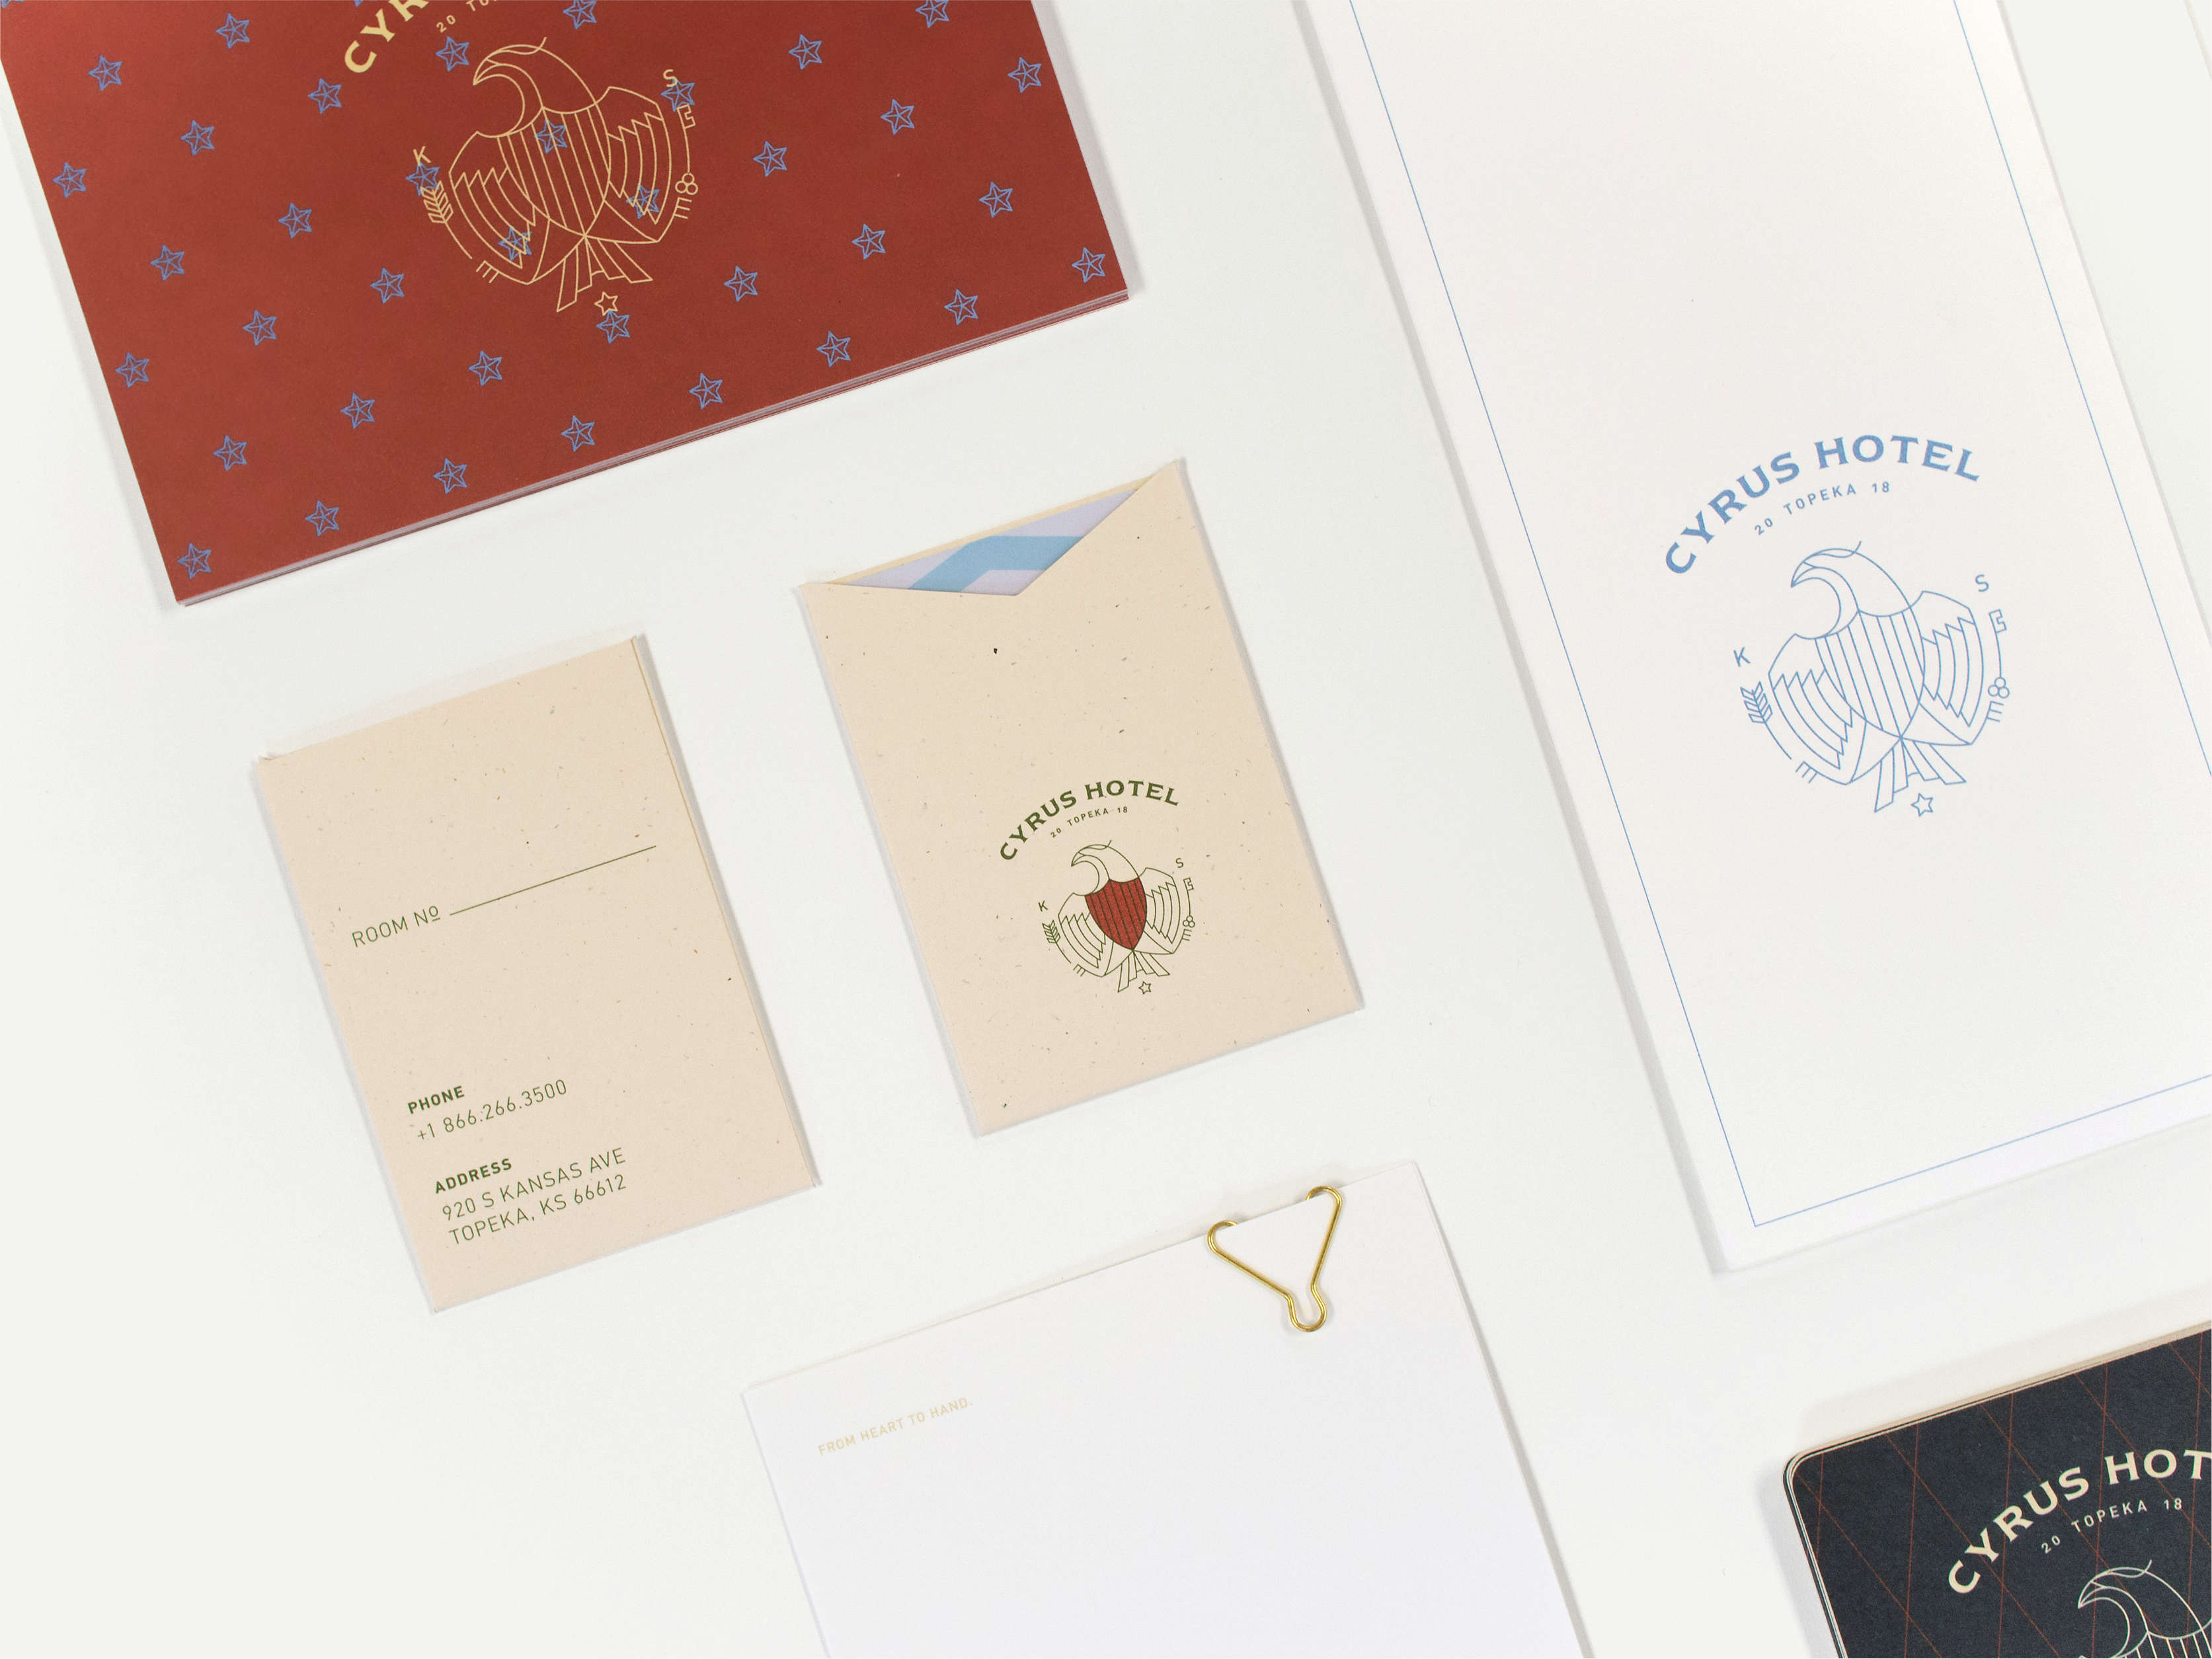 Spread of Cyrus Hotel print collateral, including room key card, post card, and note pad.